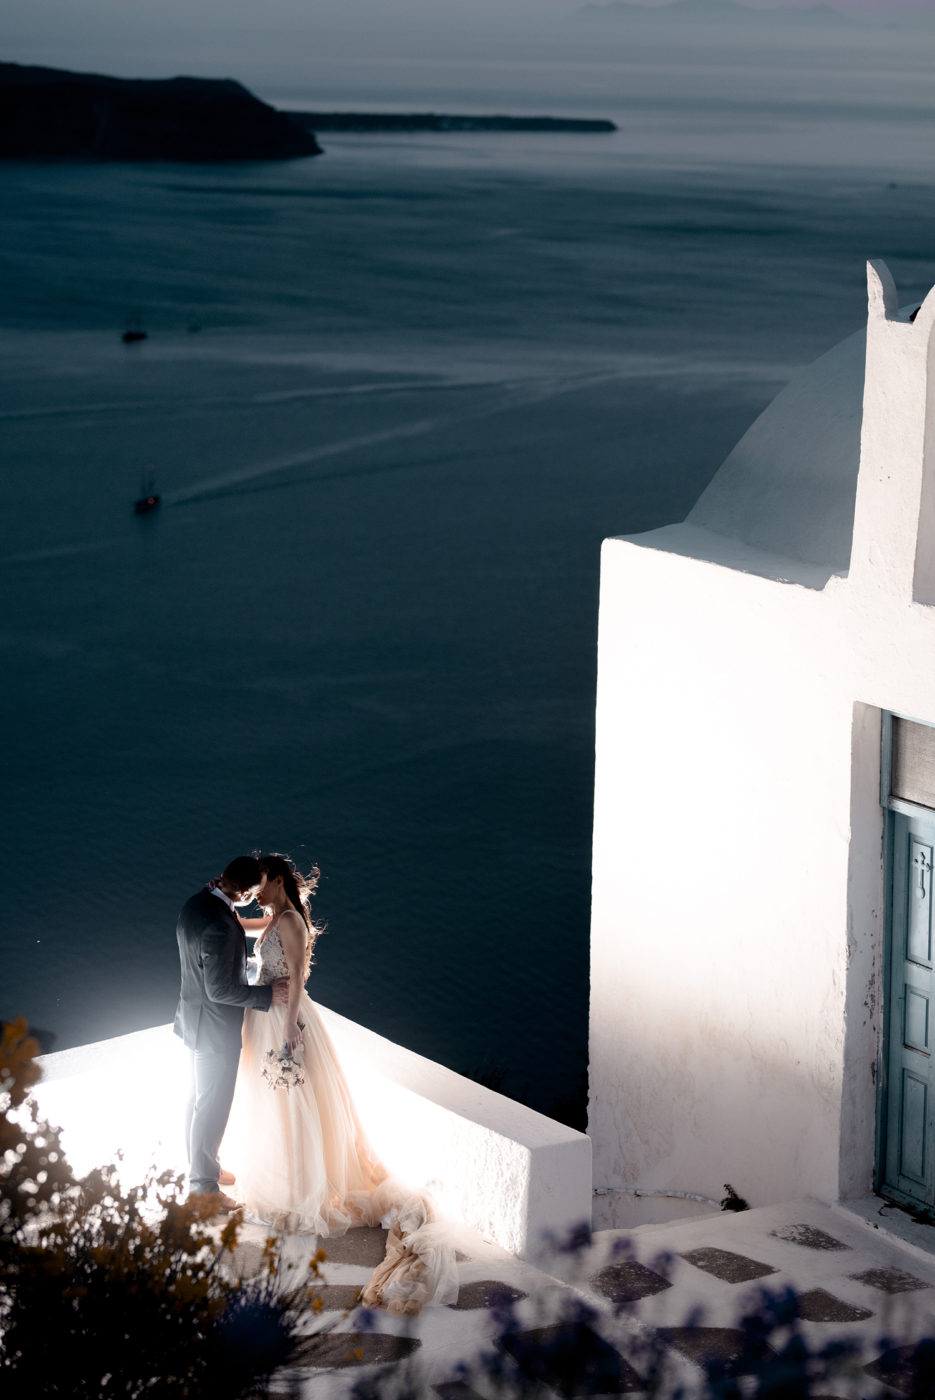 Yiannis-Sissy-Santorini-Wedding-Photography-by-Kirill-Samarits (16)